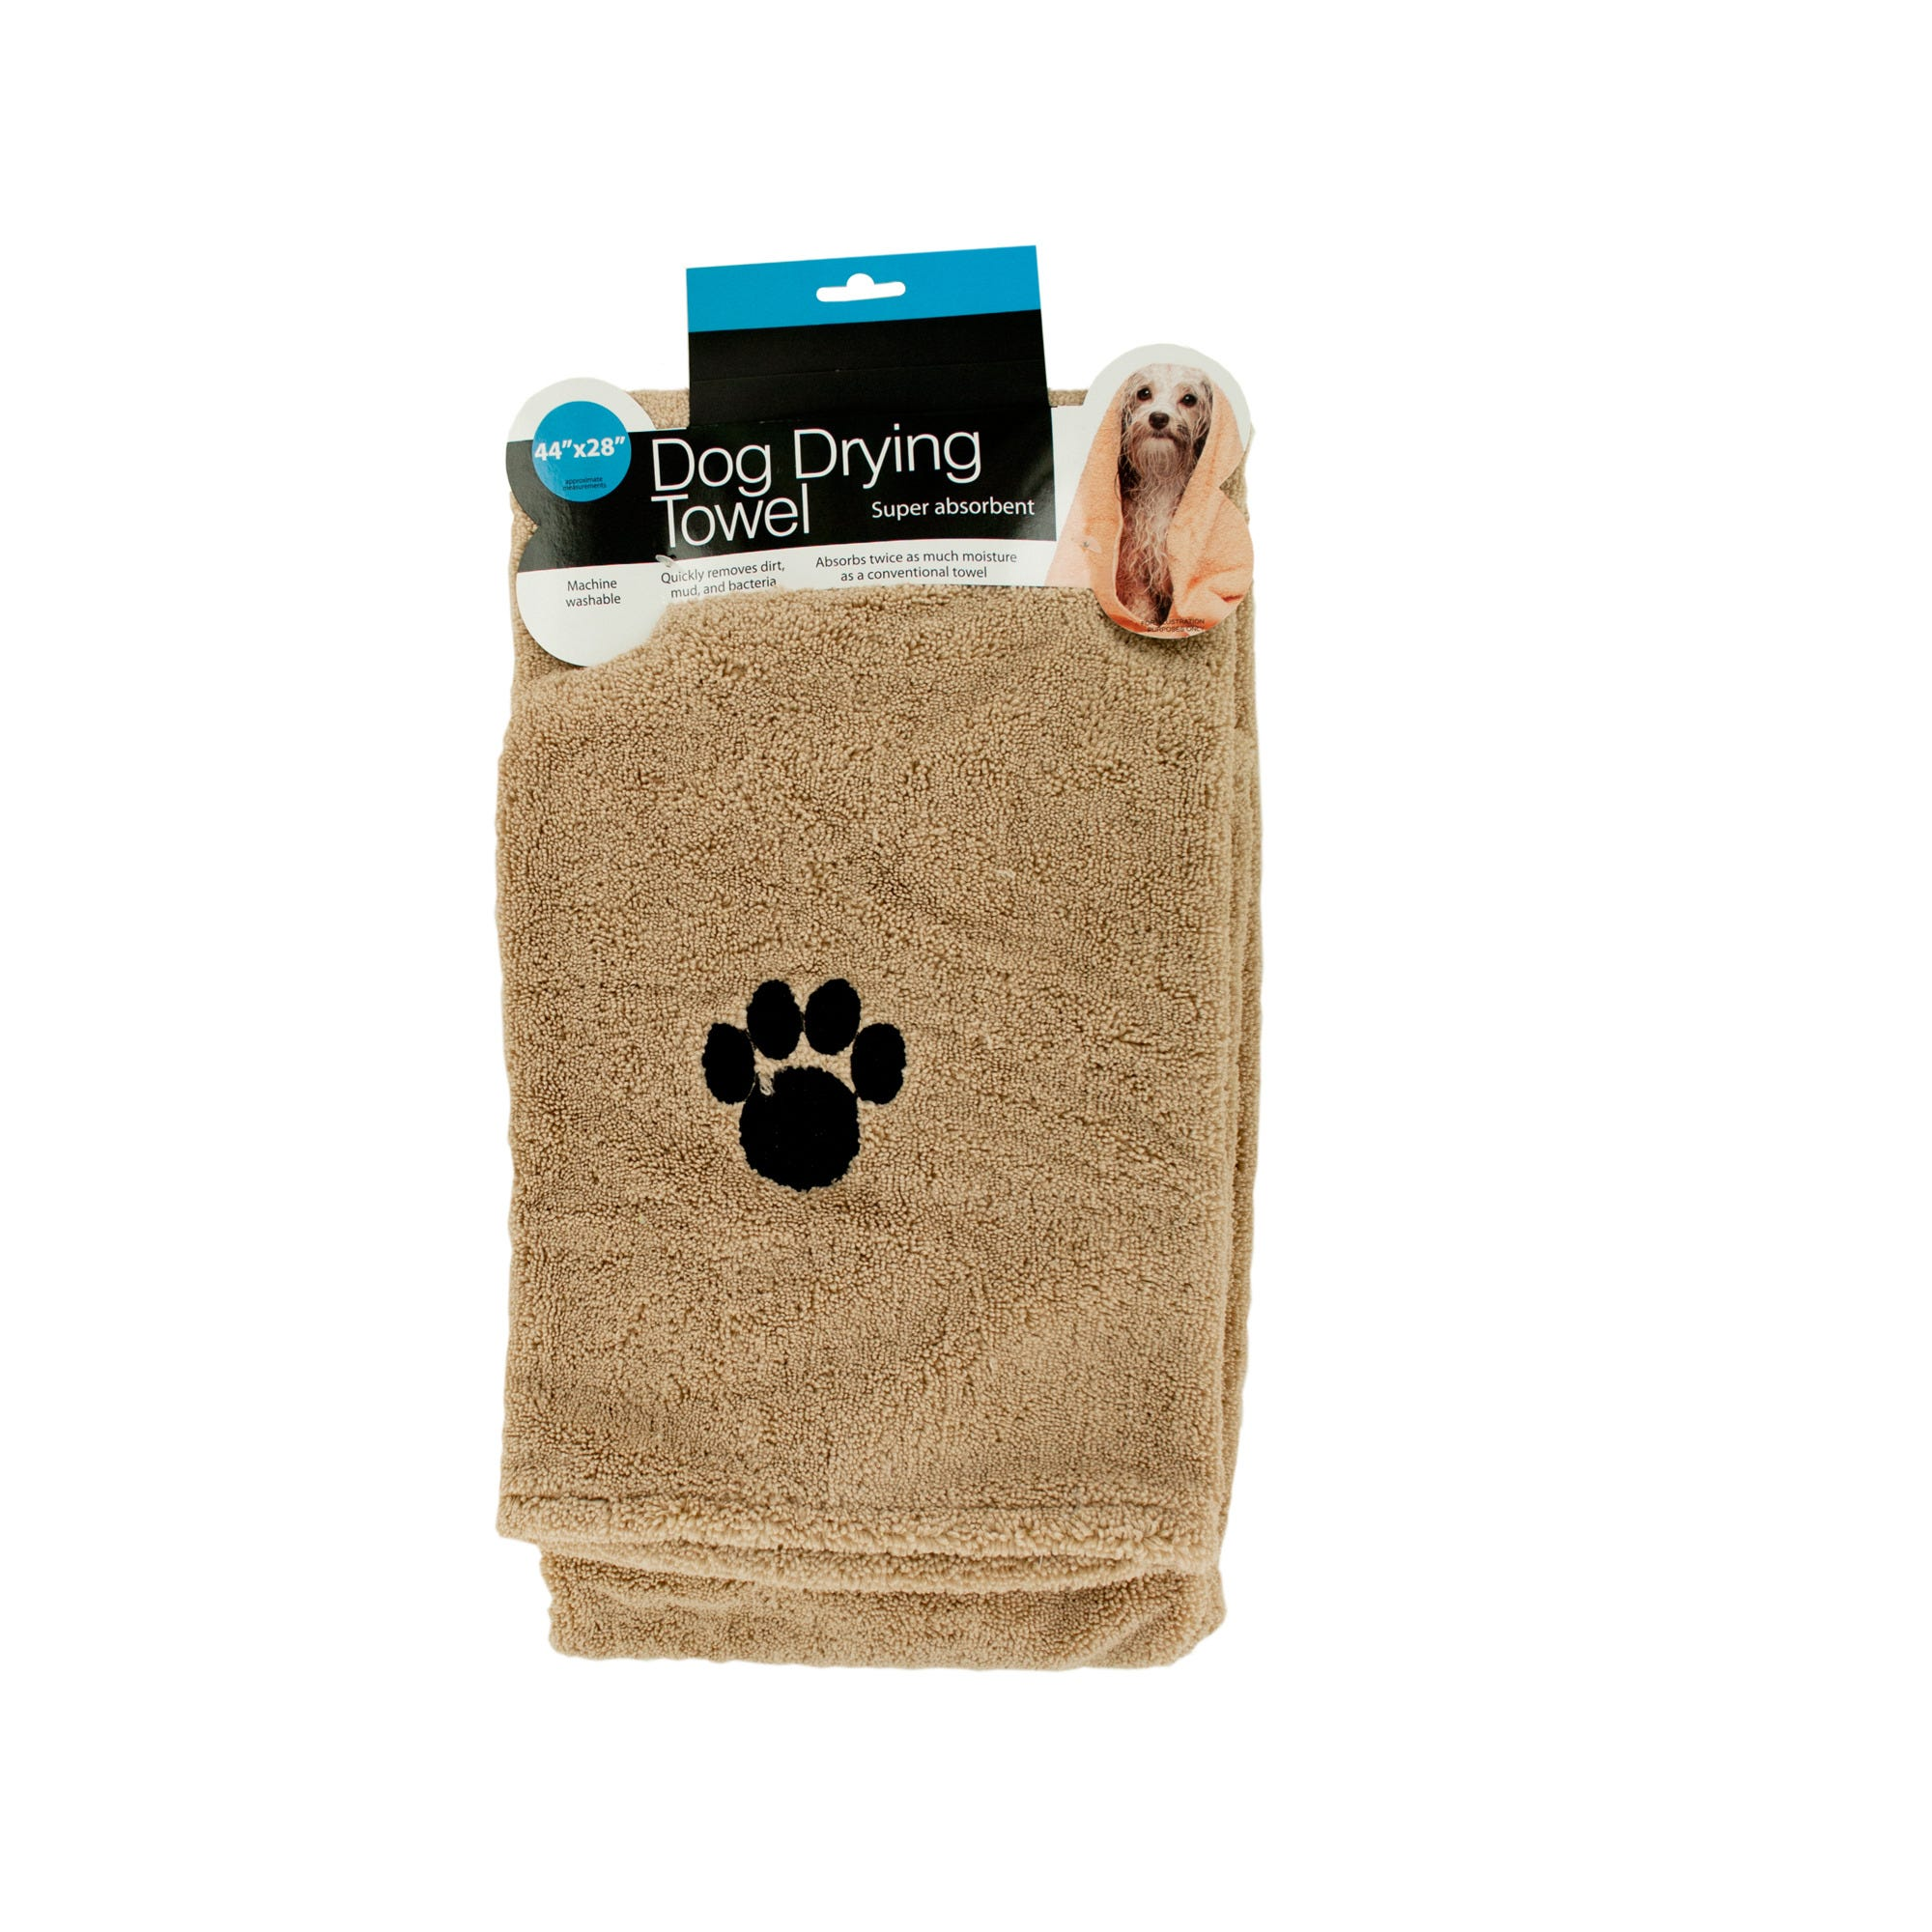 Large Super Absorbent Dog Drying TOWEL- Qty 4